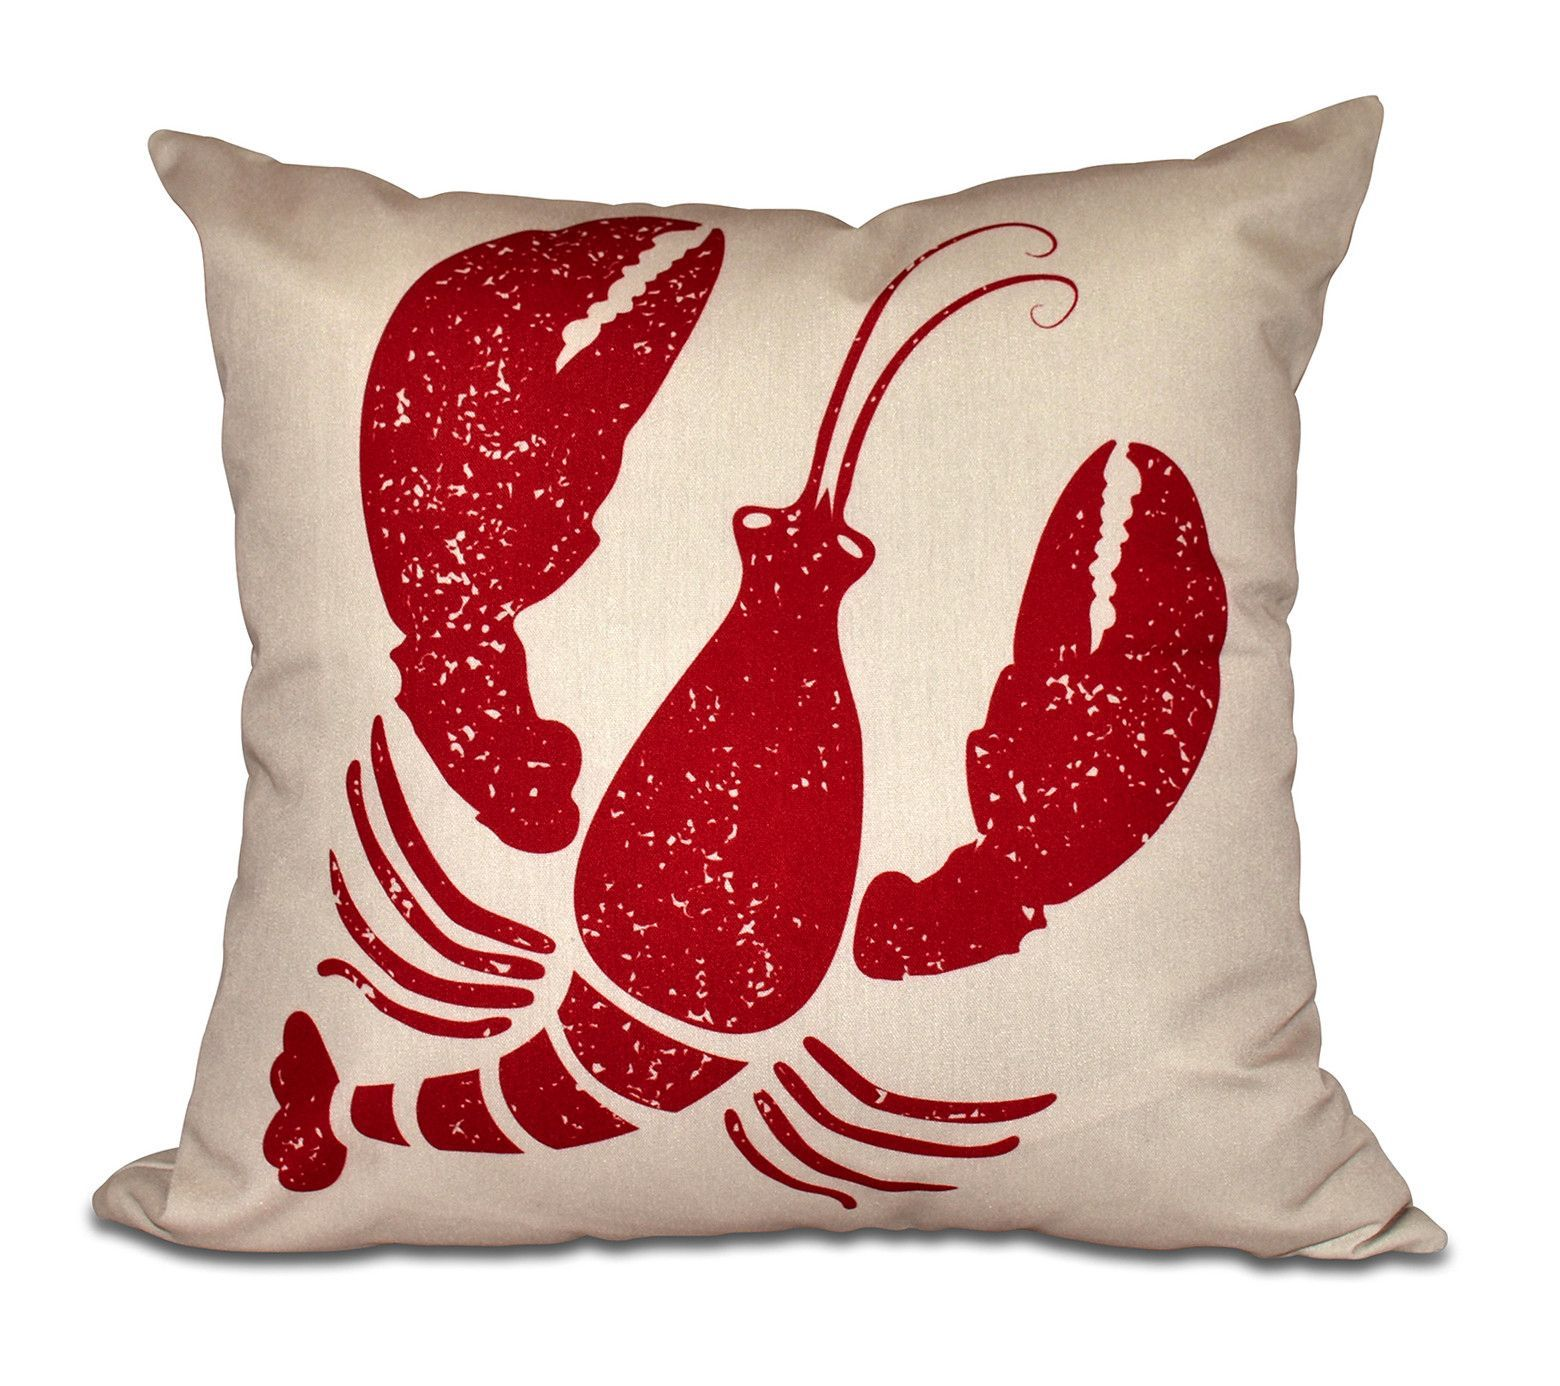 of crystal if sea has trading manatee by for come indoor the throw you house looking group pillow largest your ship perfect re pin tracht outdoor in coastal kelly pillows offers obx beach collection artist